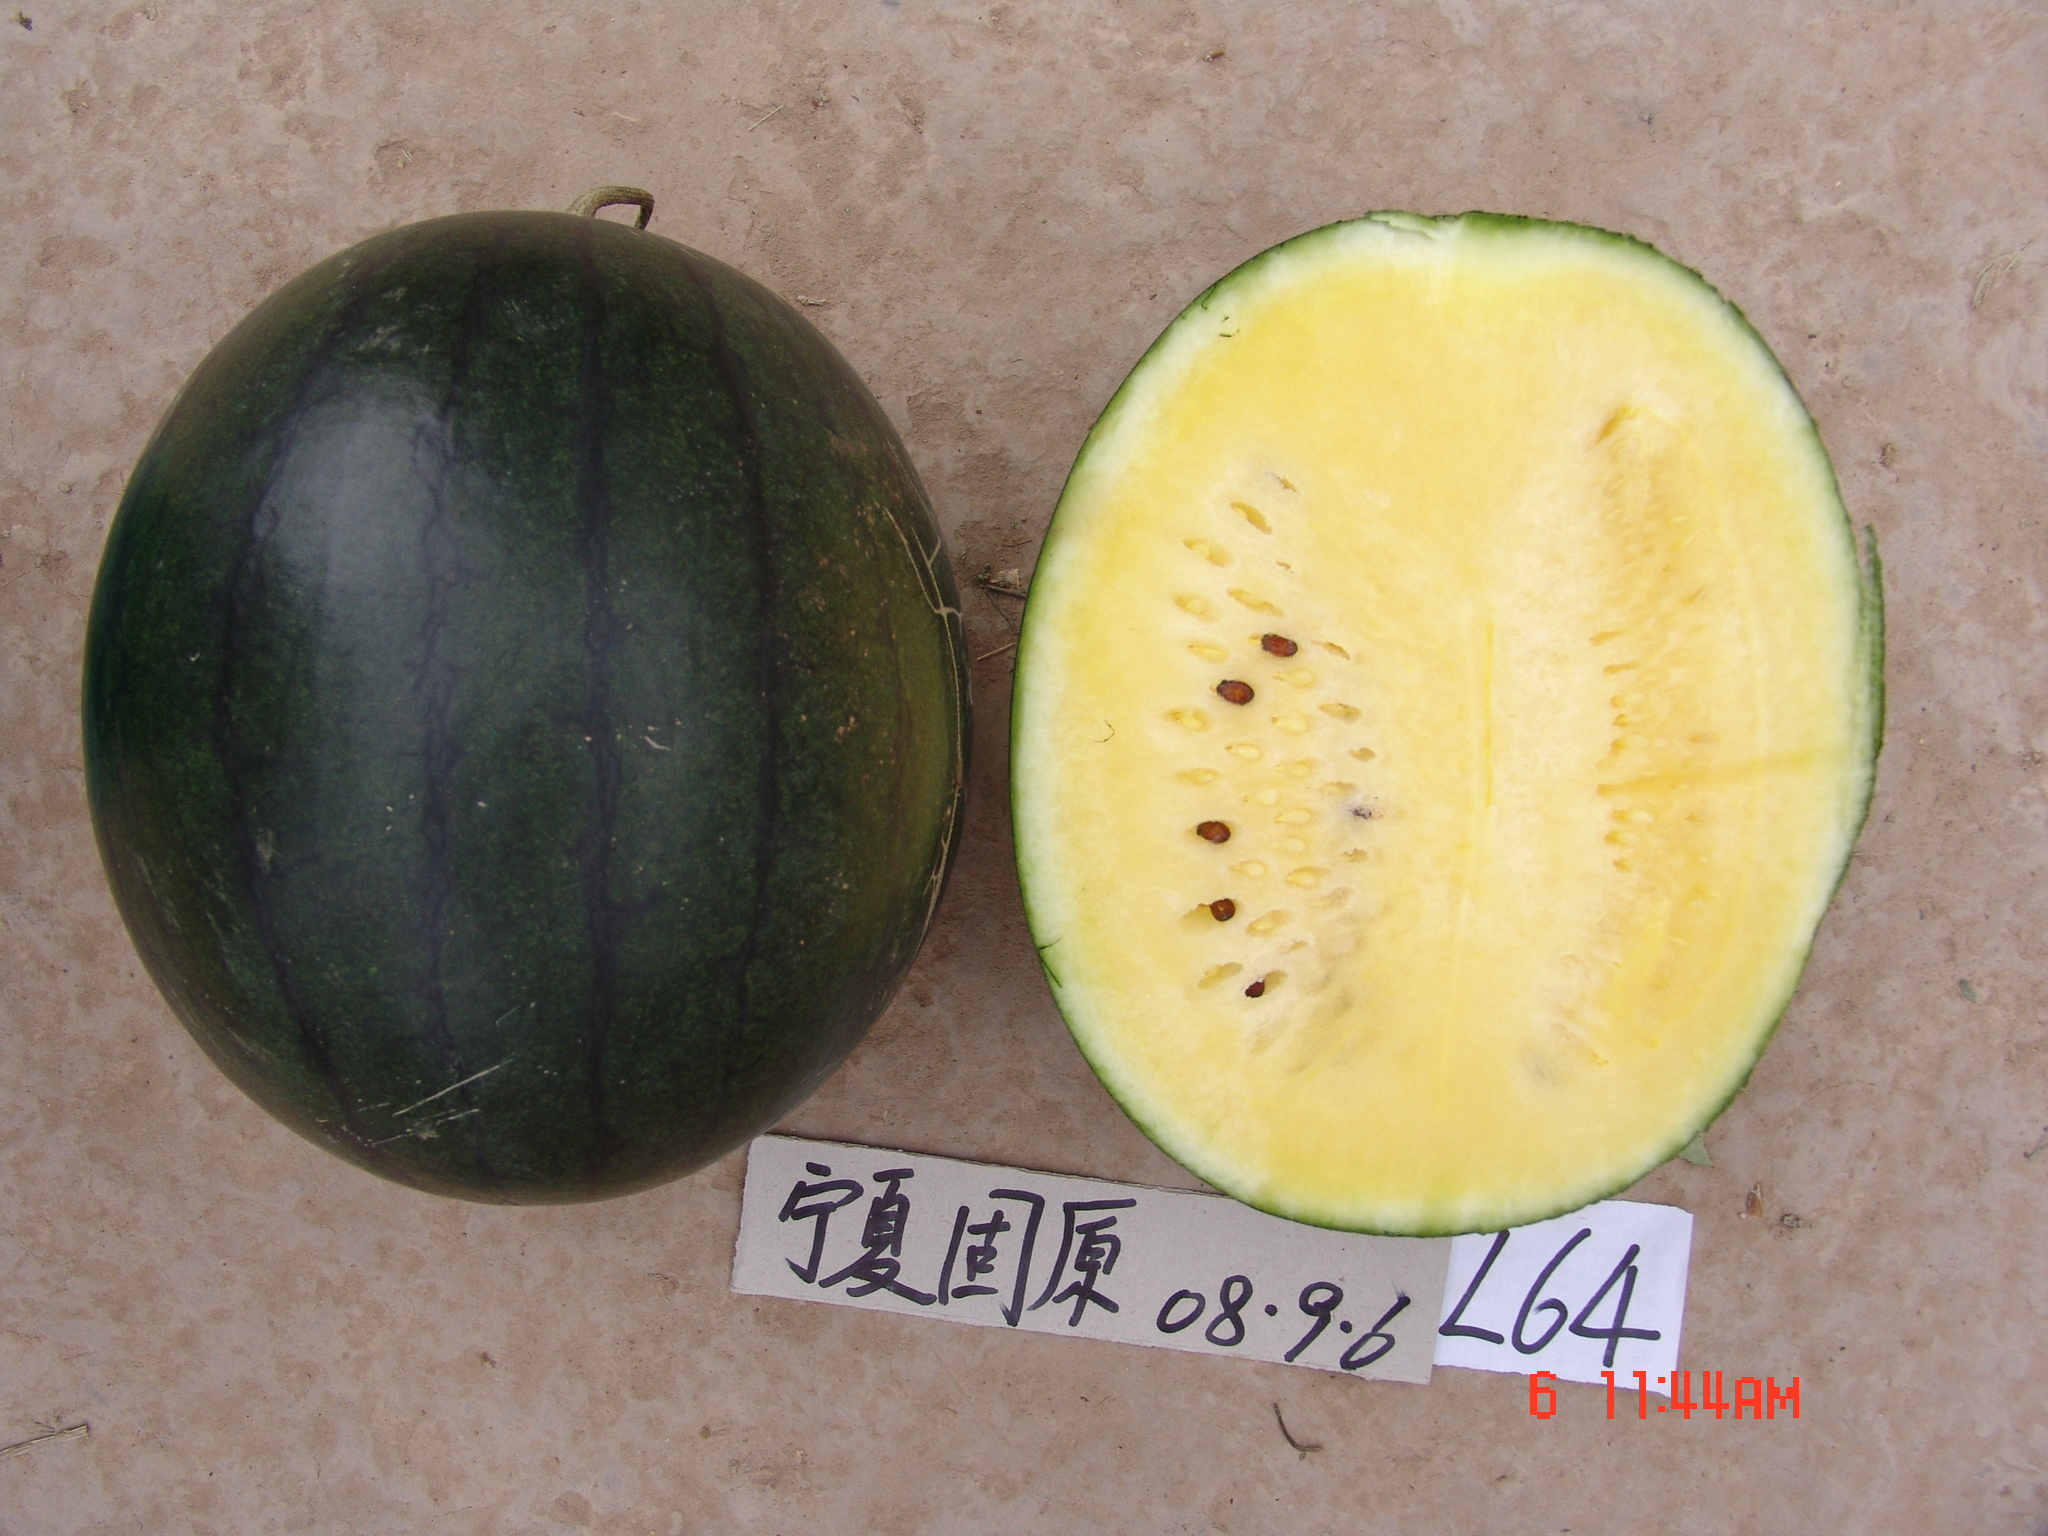 Yellow Flash Watermelon Seeds for Sale